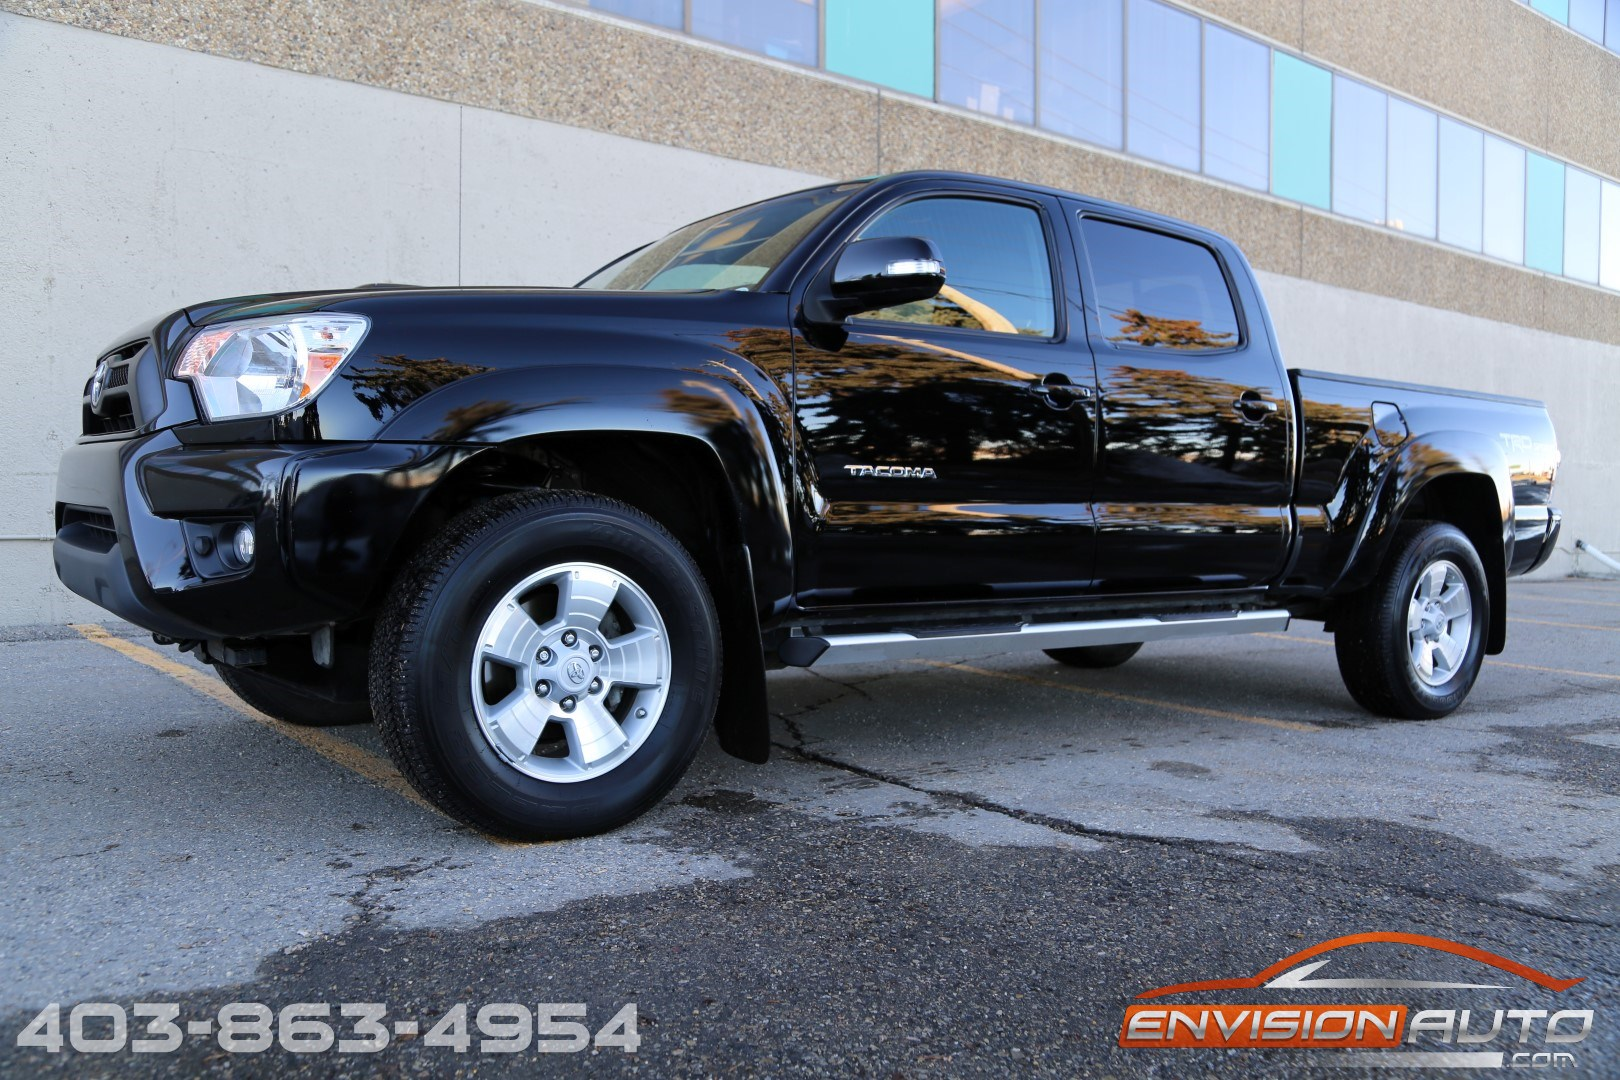 2014 toyota tacoma v6 trd sport double cab long box 4wd envision auto. Black Bedroom Furniture Sets. Home Design Ideas